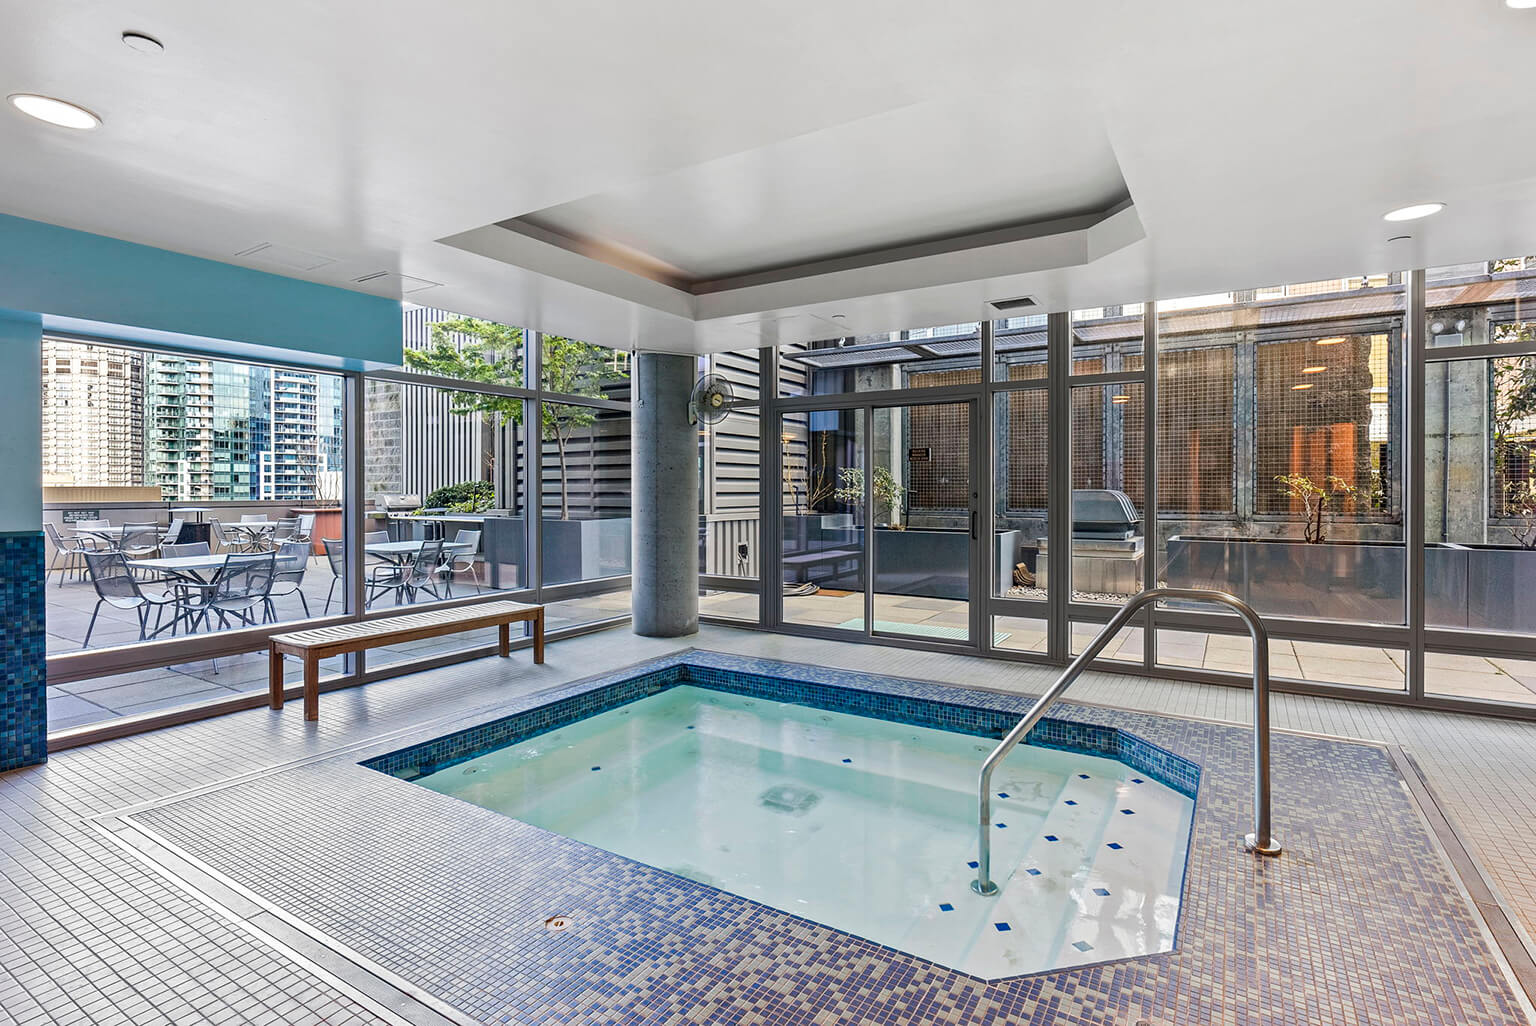 Spa and steam room are adjacent to the fitness room